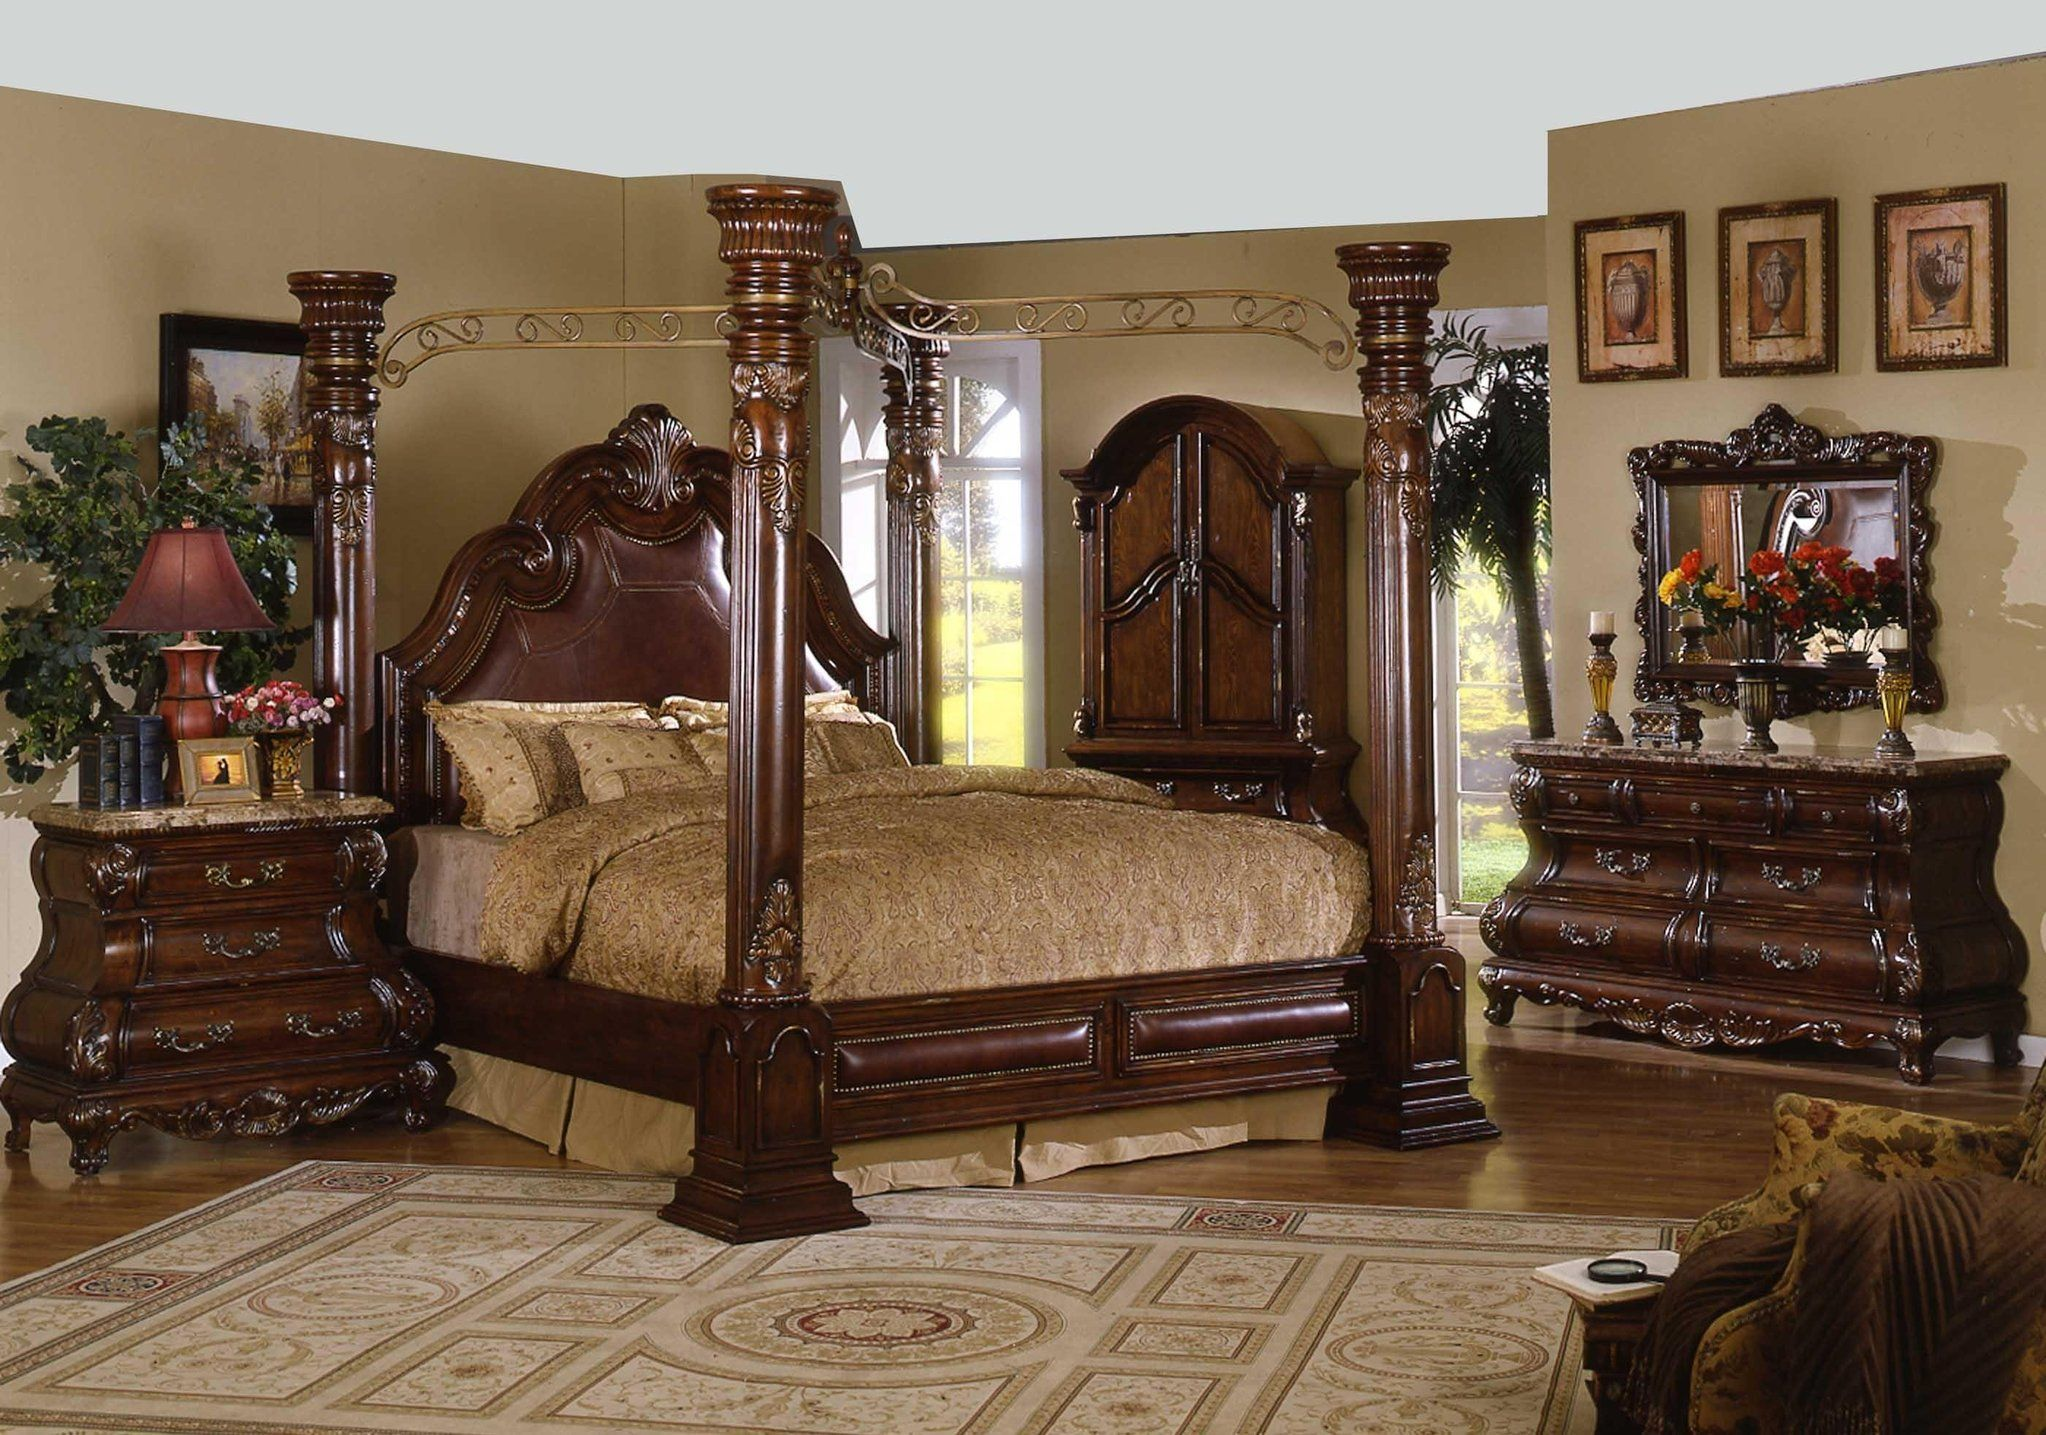 Four Post Bed Canopy 2,499 canopy bed | canopy bedroom sets | four post canopy bed 4734